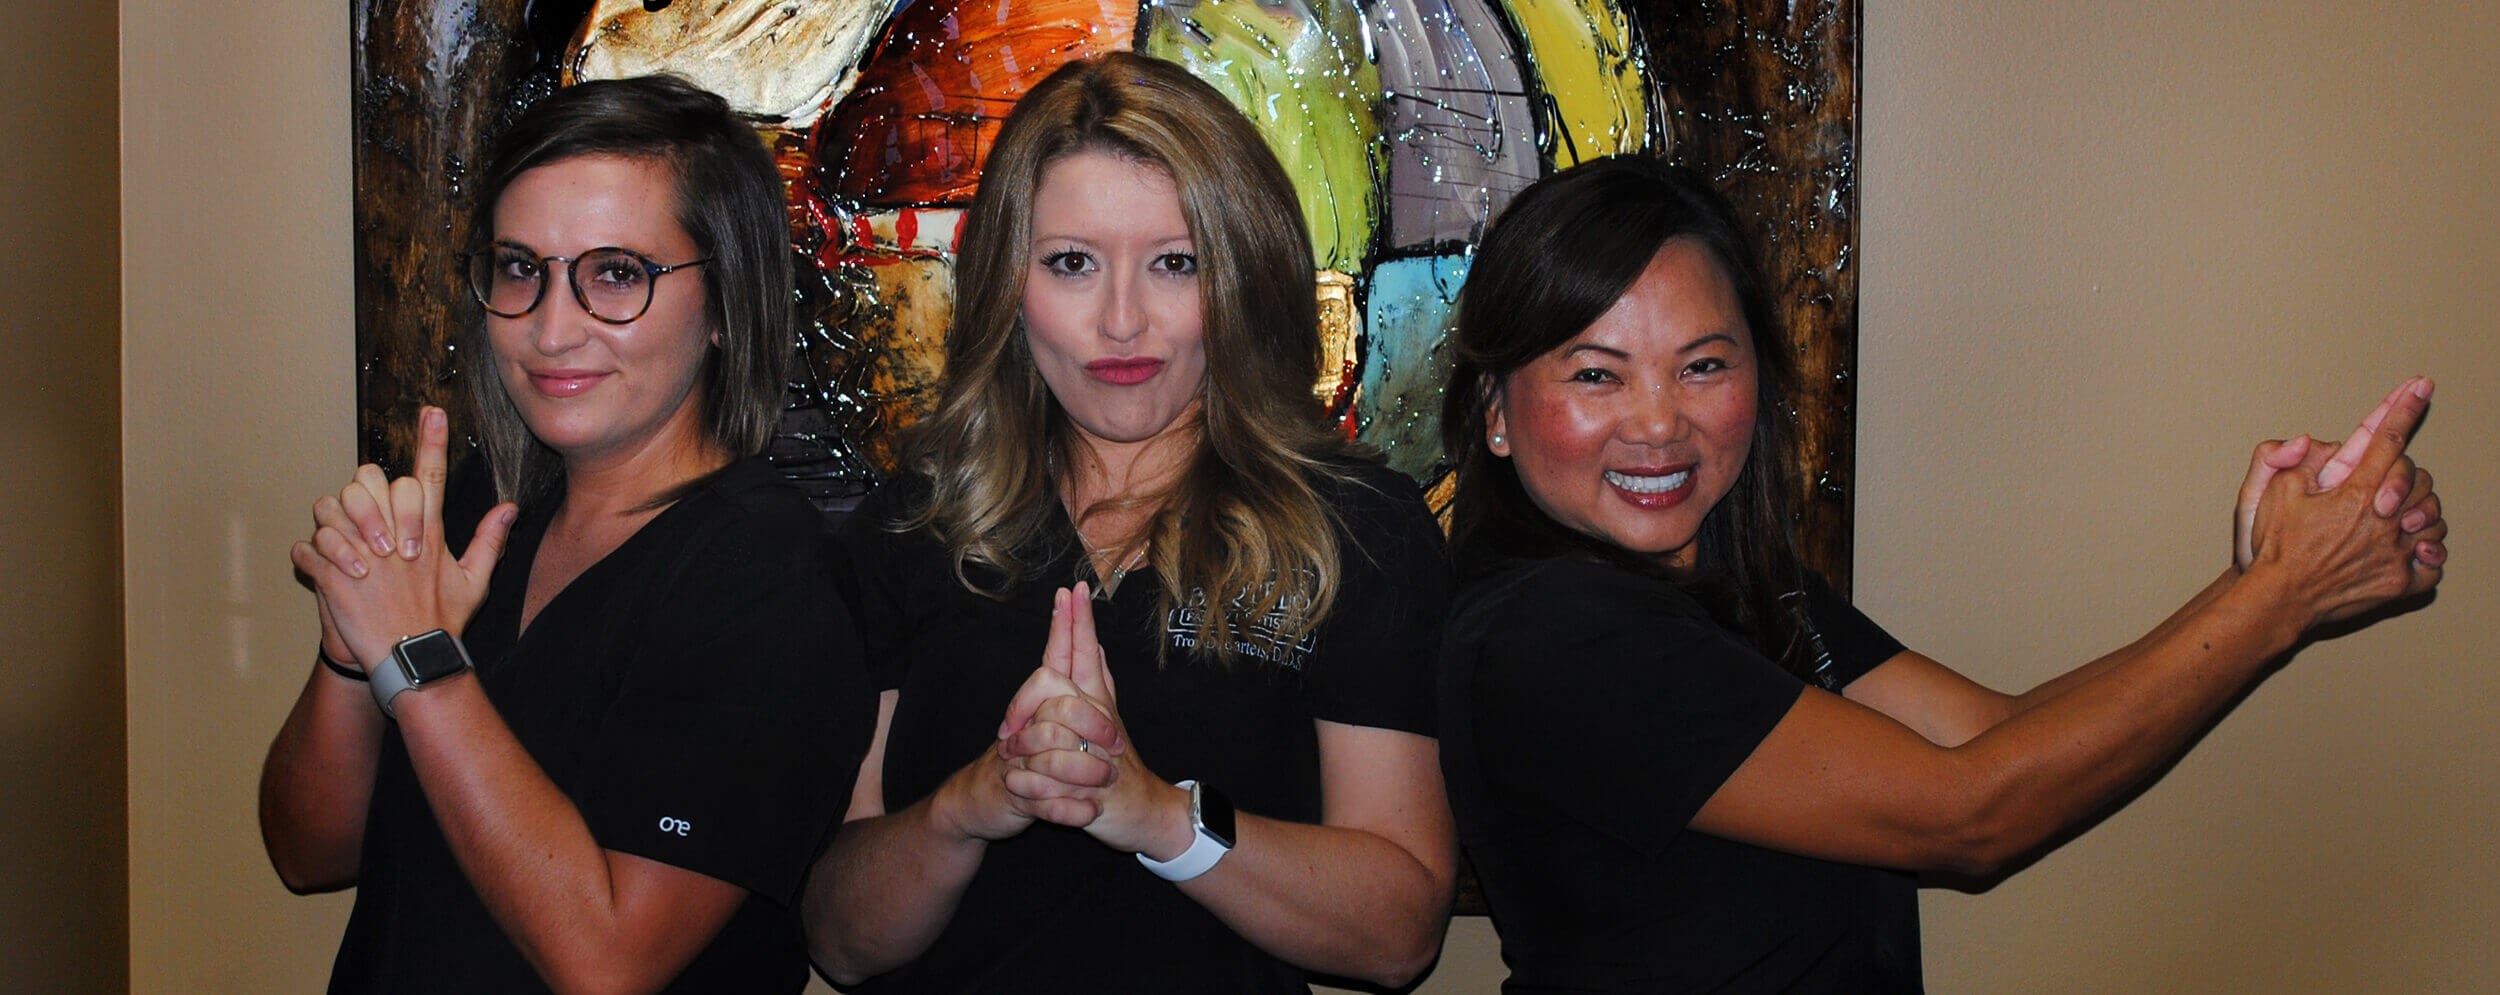 Bartels Family Dentistry staff in Charlie's Angels pose